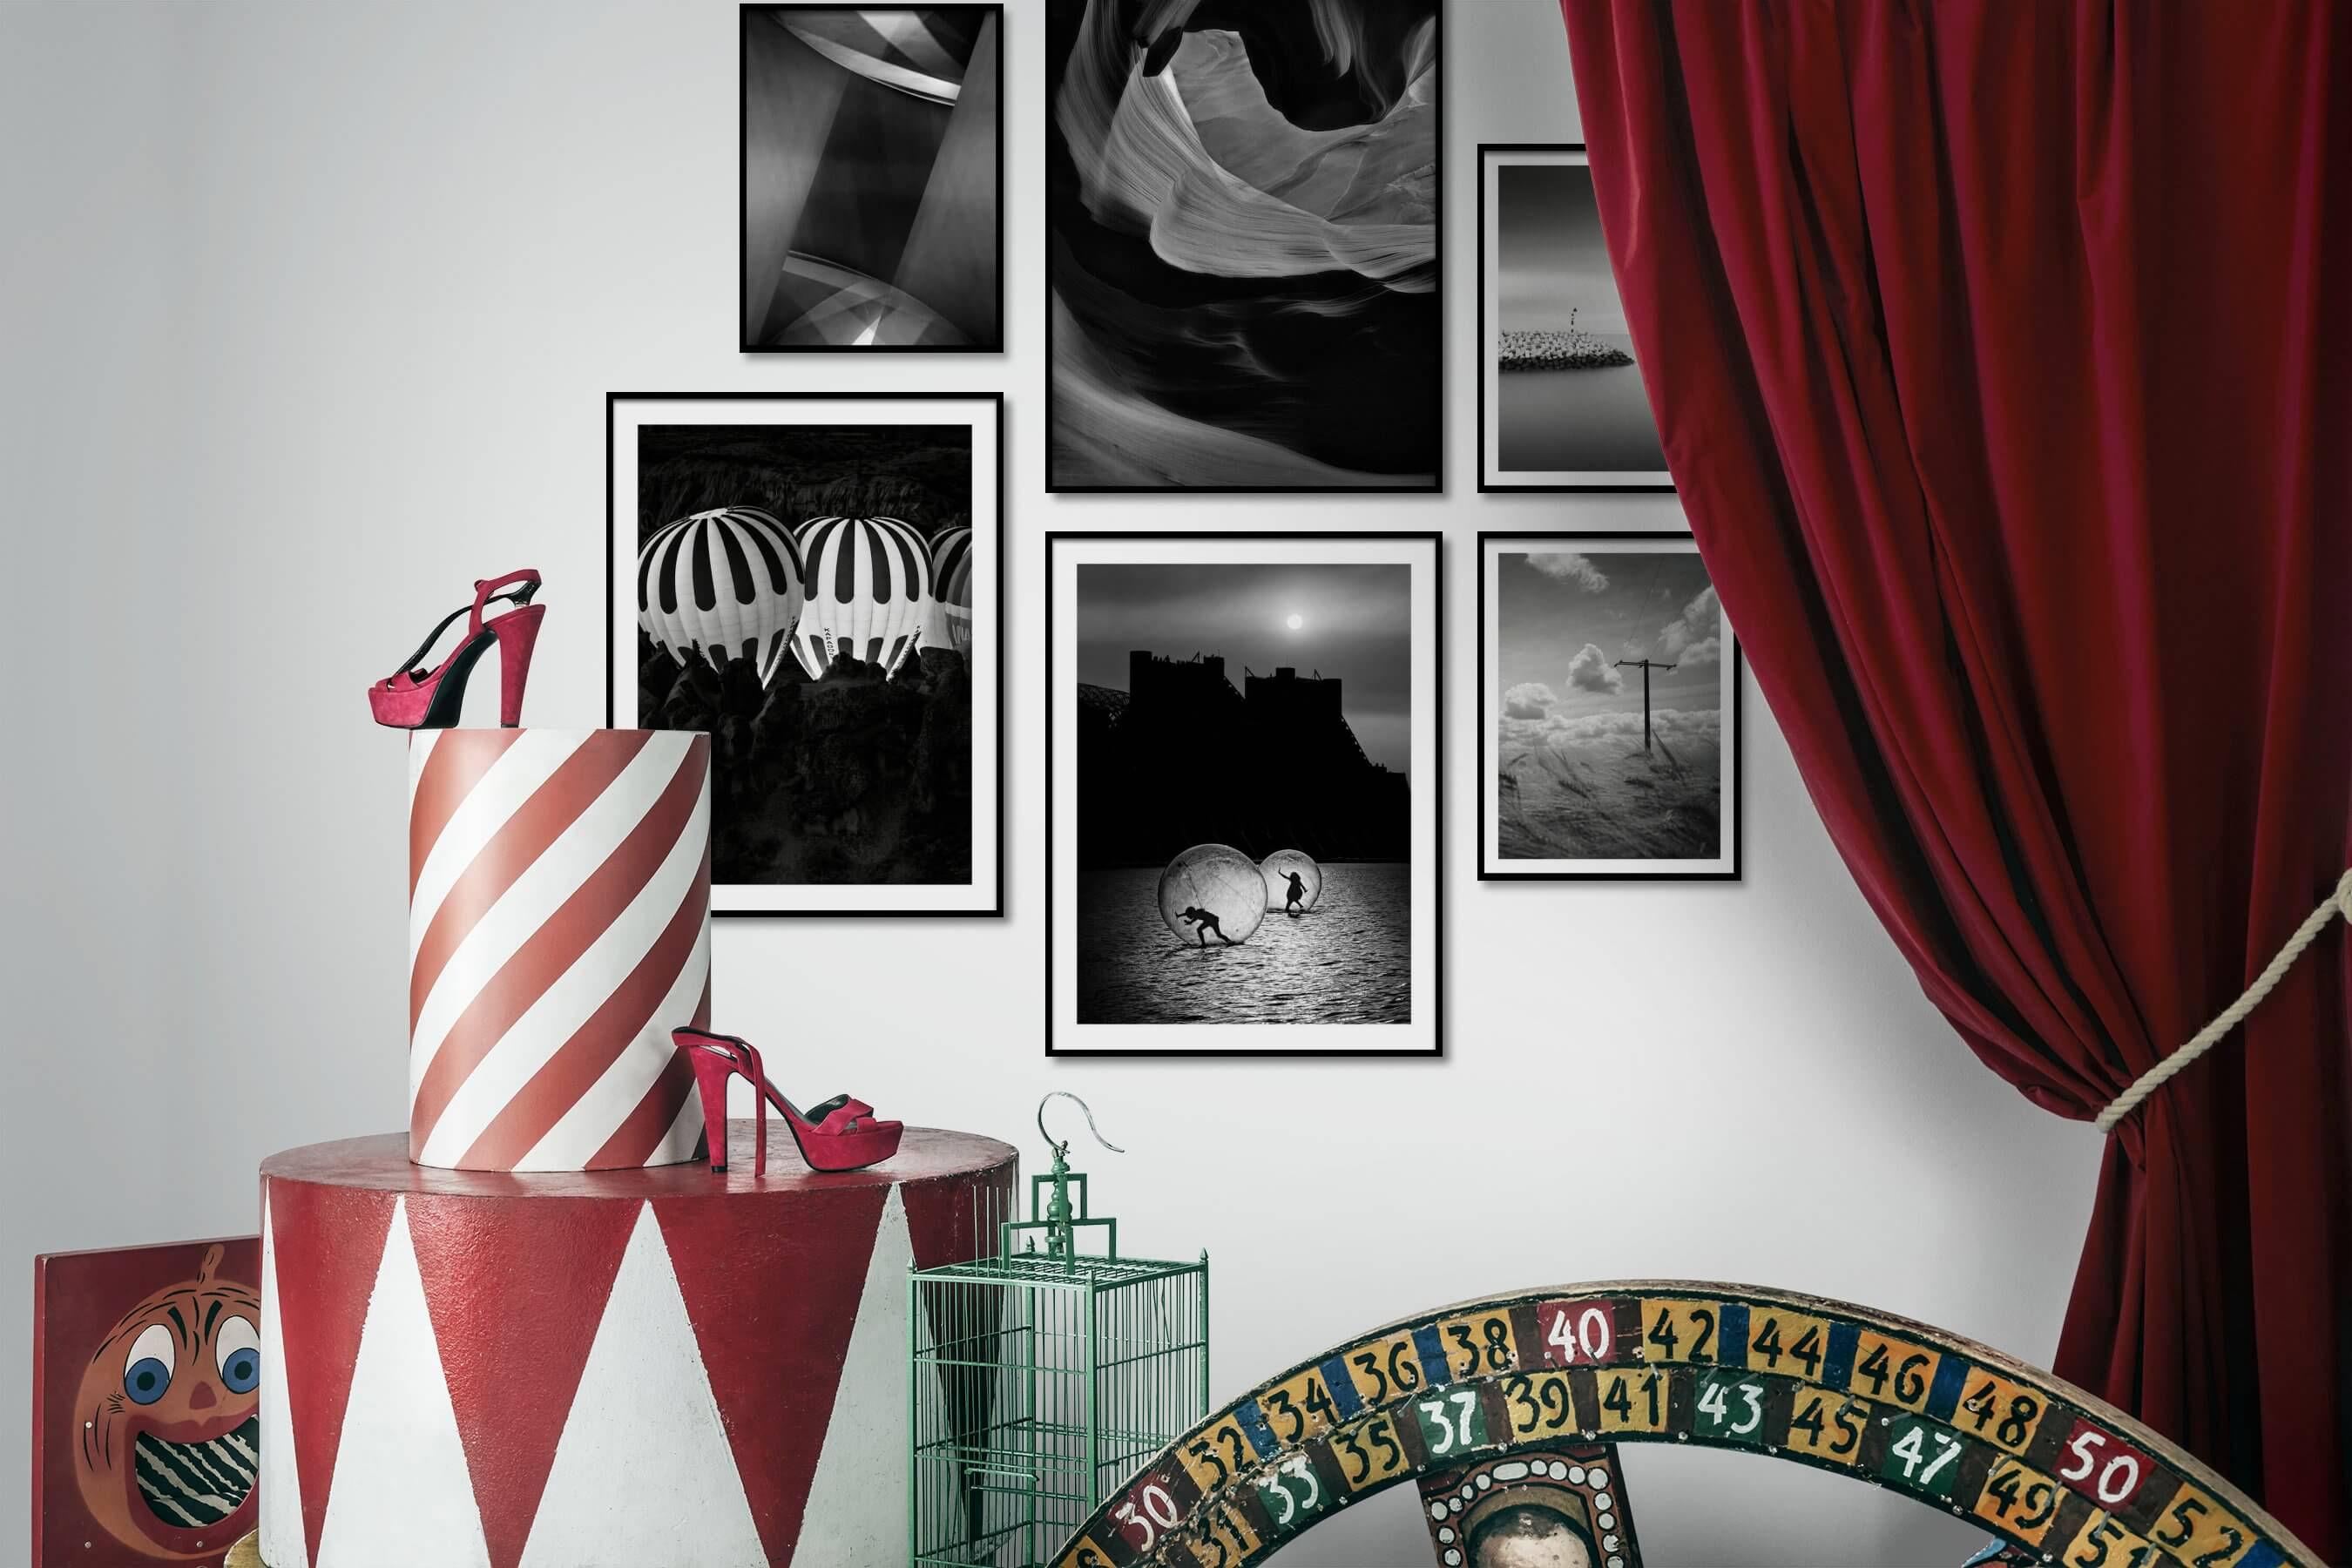 Gallery wall idea with six framed pictures arranged on a wall depicting Black & White, For the Moderate, Nature, For the Minimalist, Beach & Water, and Country Life